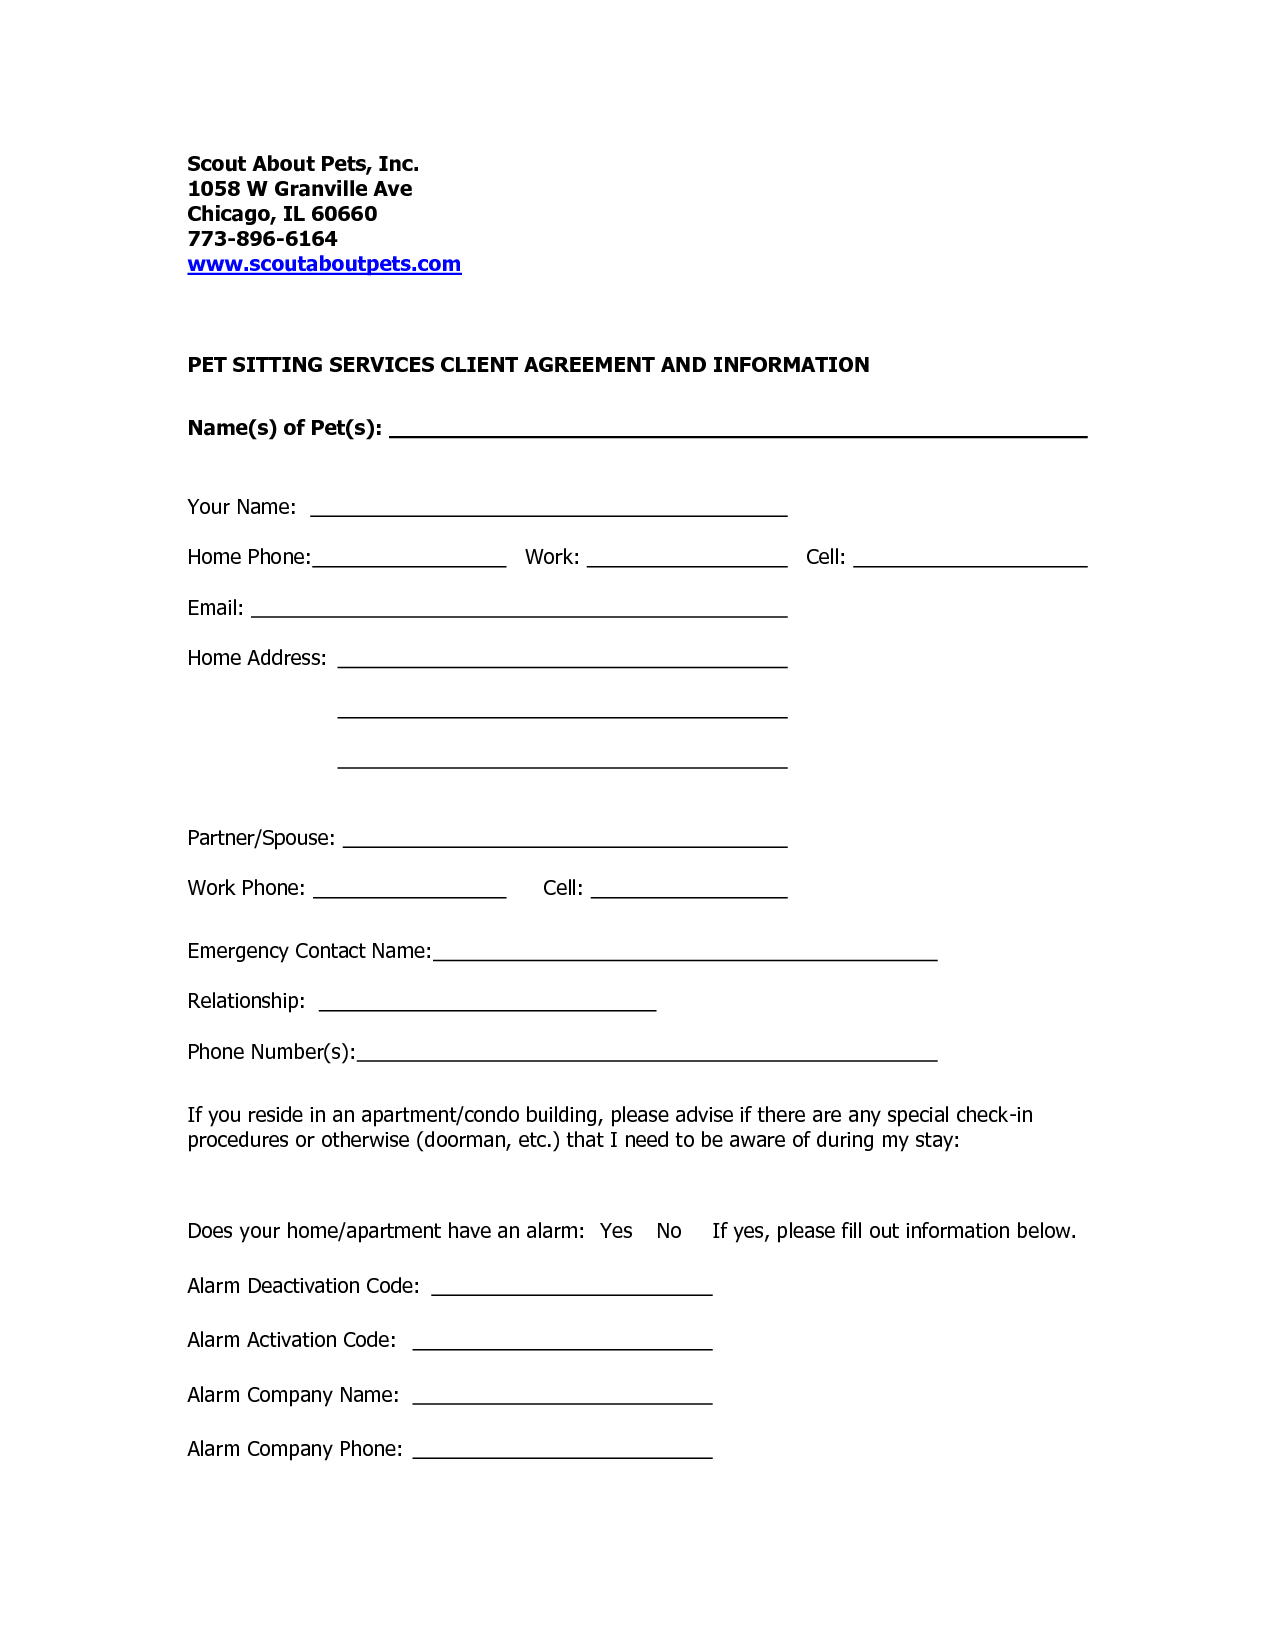 veterinary forms templates - professional pet sitting forms template dog sitting form